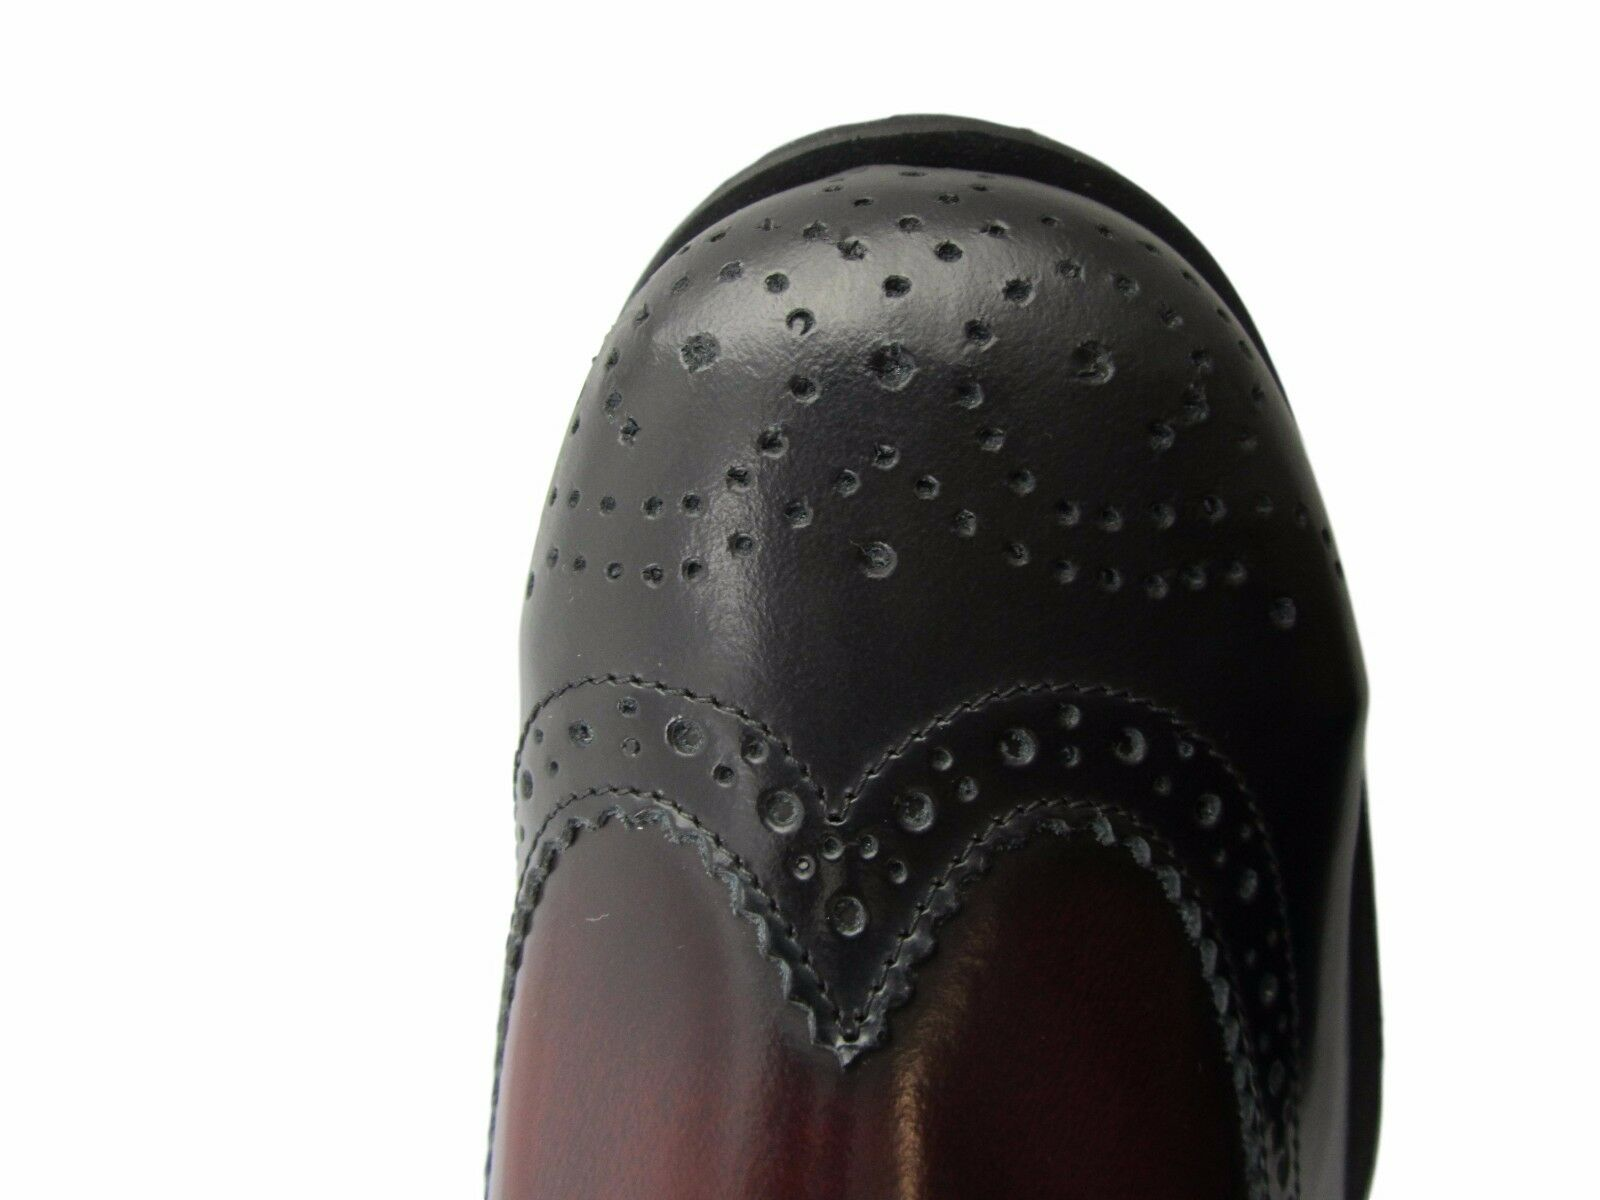 Steel Ground Burgundy Red Leather Brogue Shoes Eyelets Safety Under Cap 4 Eyelets Shoes Shoe c09ccf